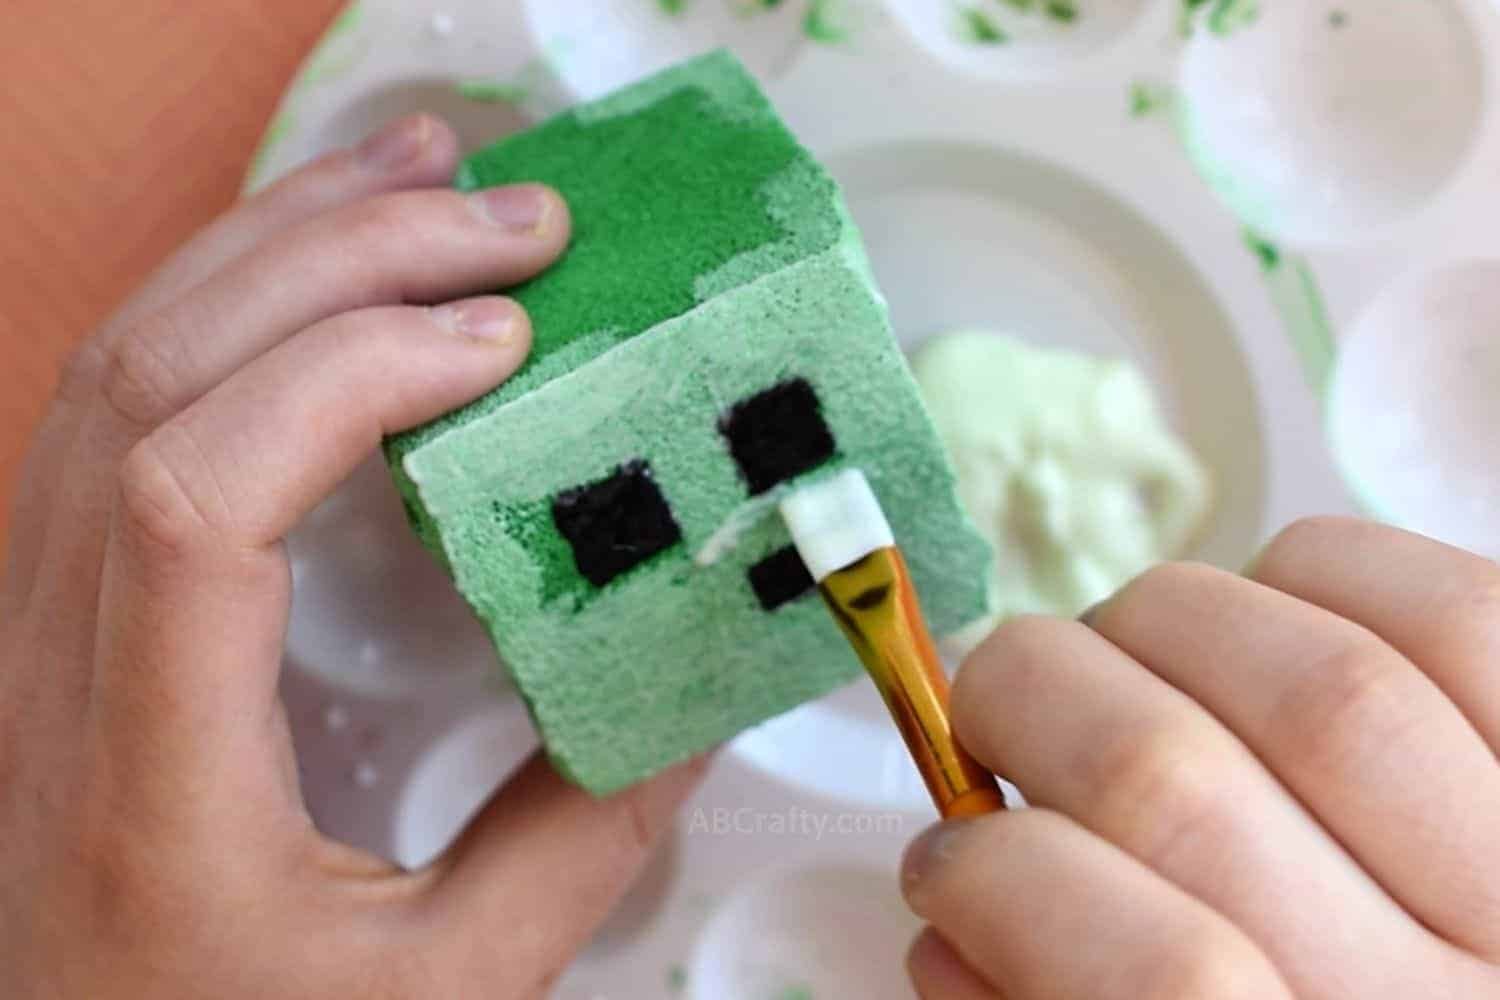 Painting Minecraft squishy slime block with glow in the dark fabric paint using a paintbrush